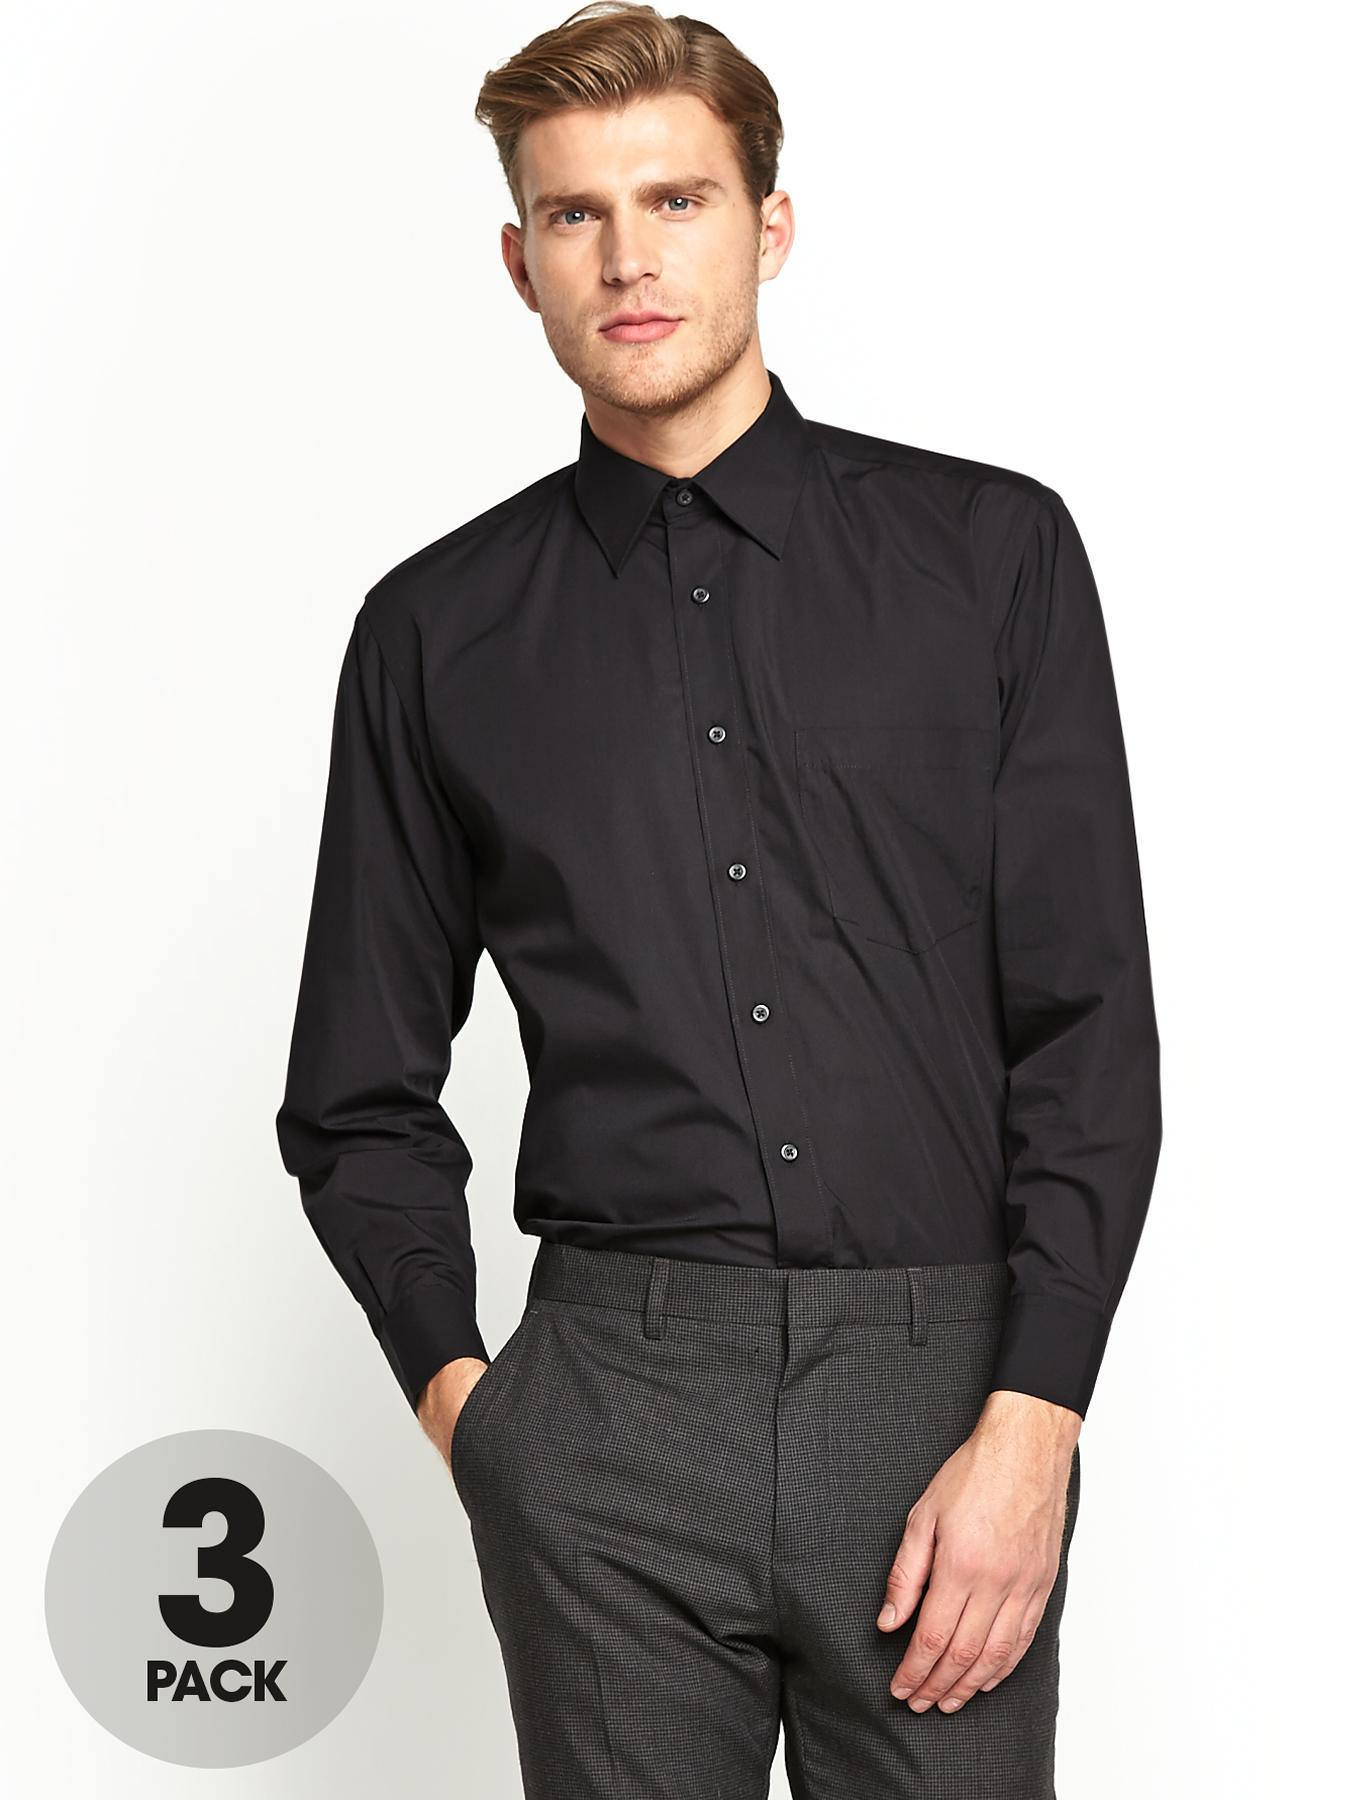 Mens Regular Fit Shirts (3 Pack) - Black, Black